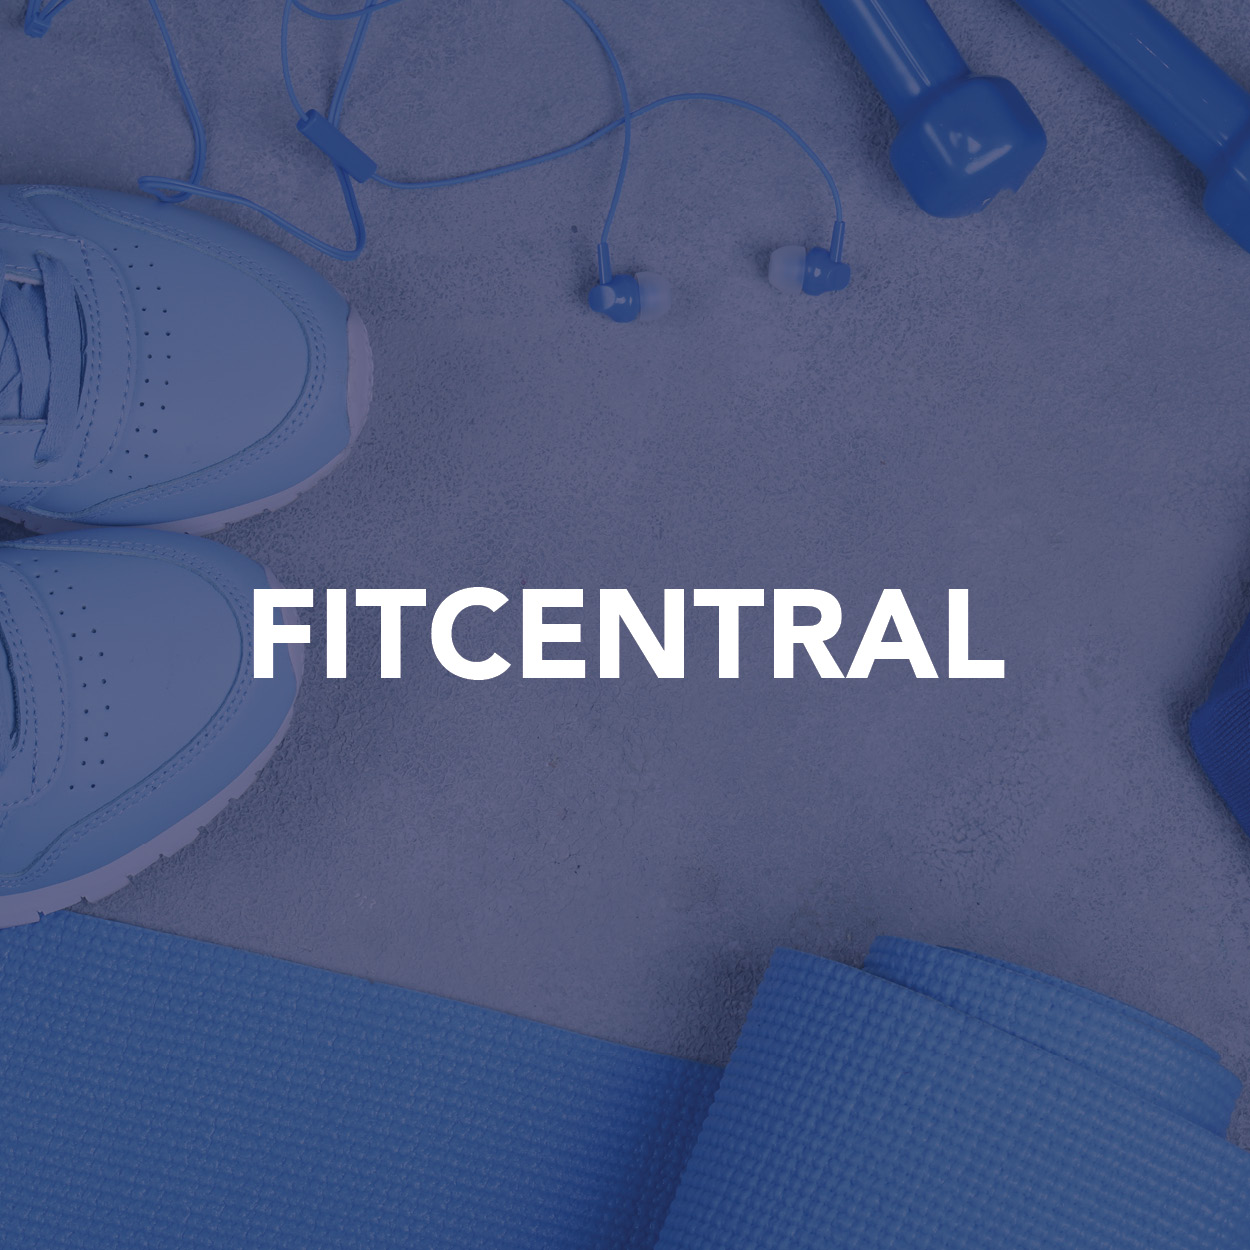 FitCentral